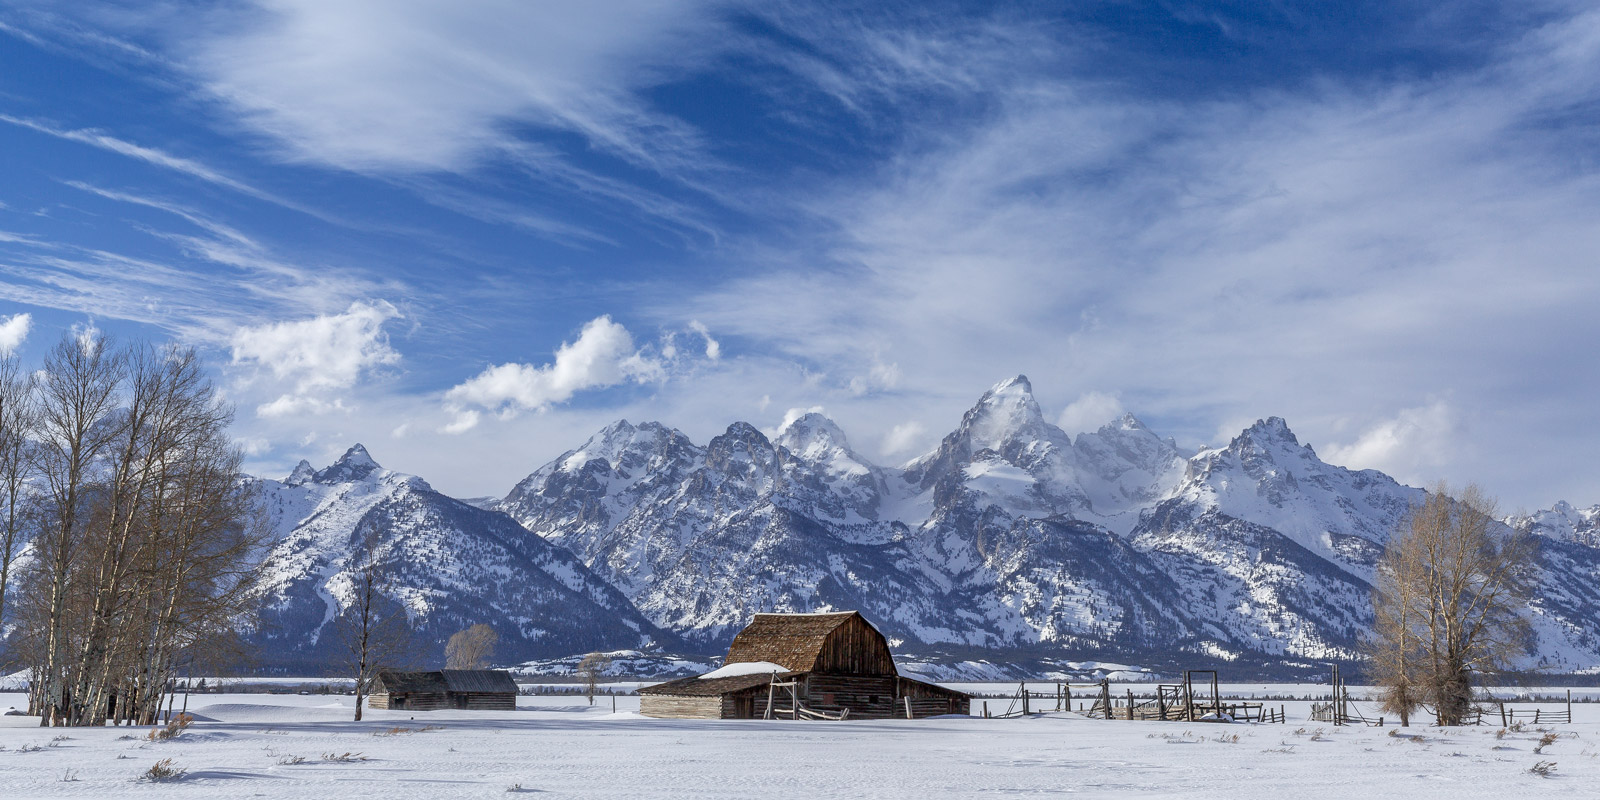 Wyoming, Tetons, Grand Tetons, winter, snow, mountains, limited edition, photograph, fine art, landscape, photo